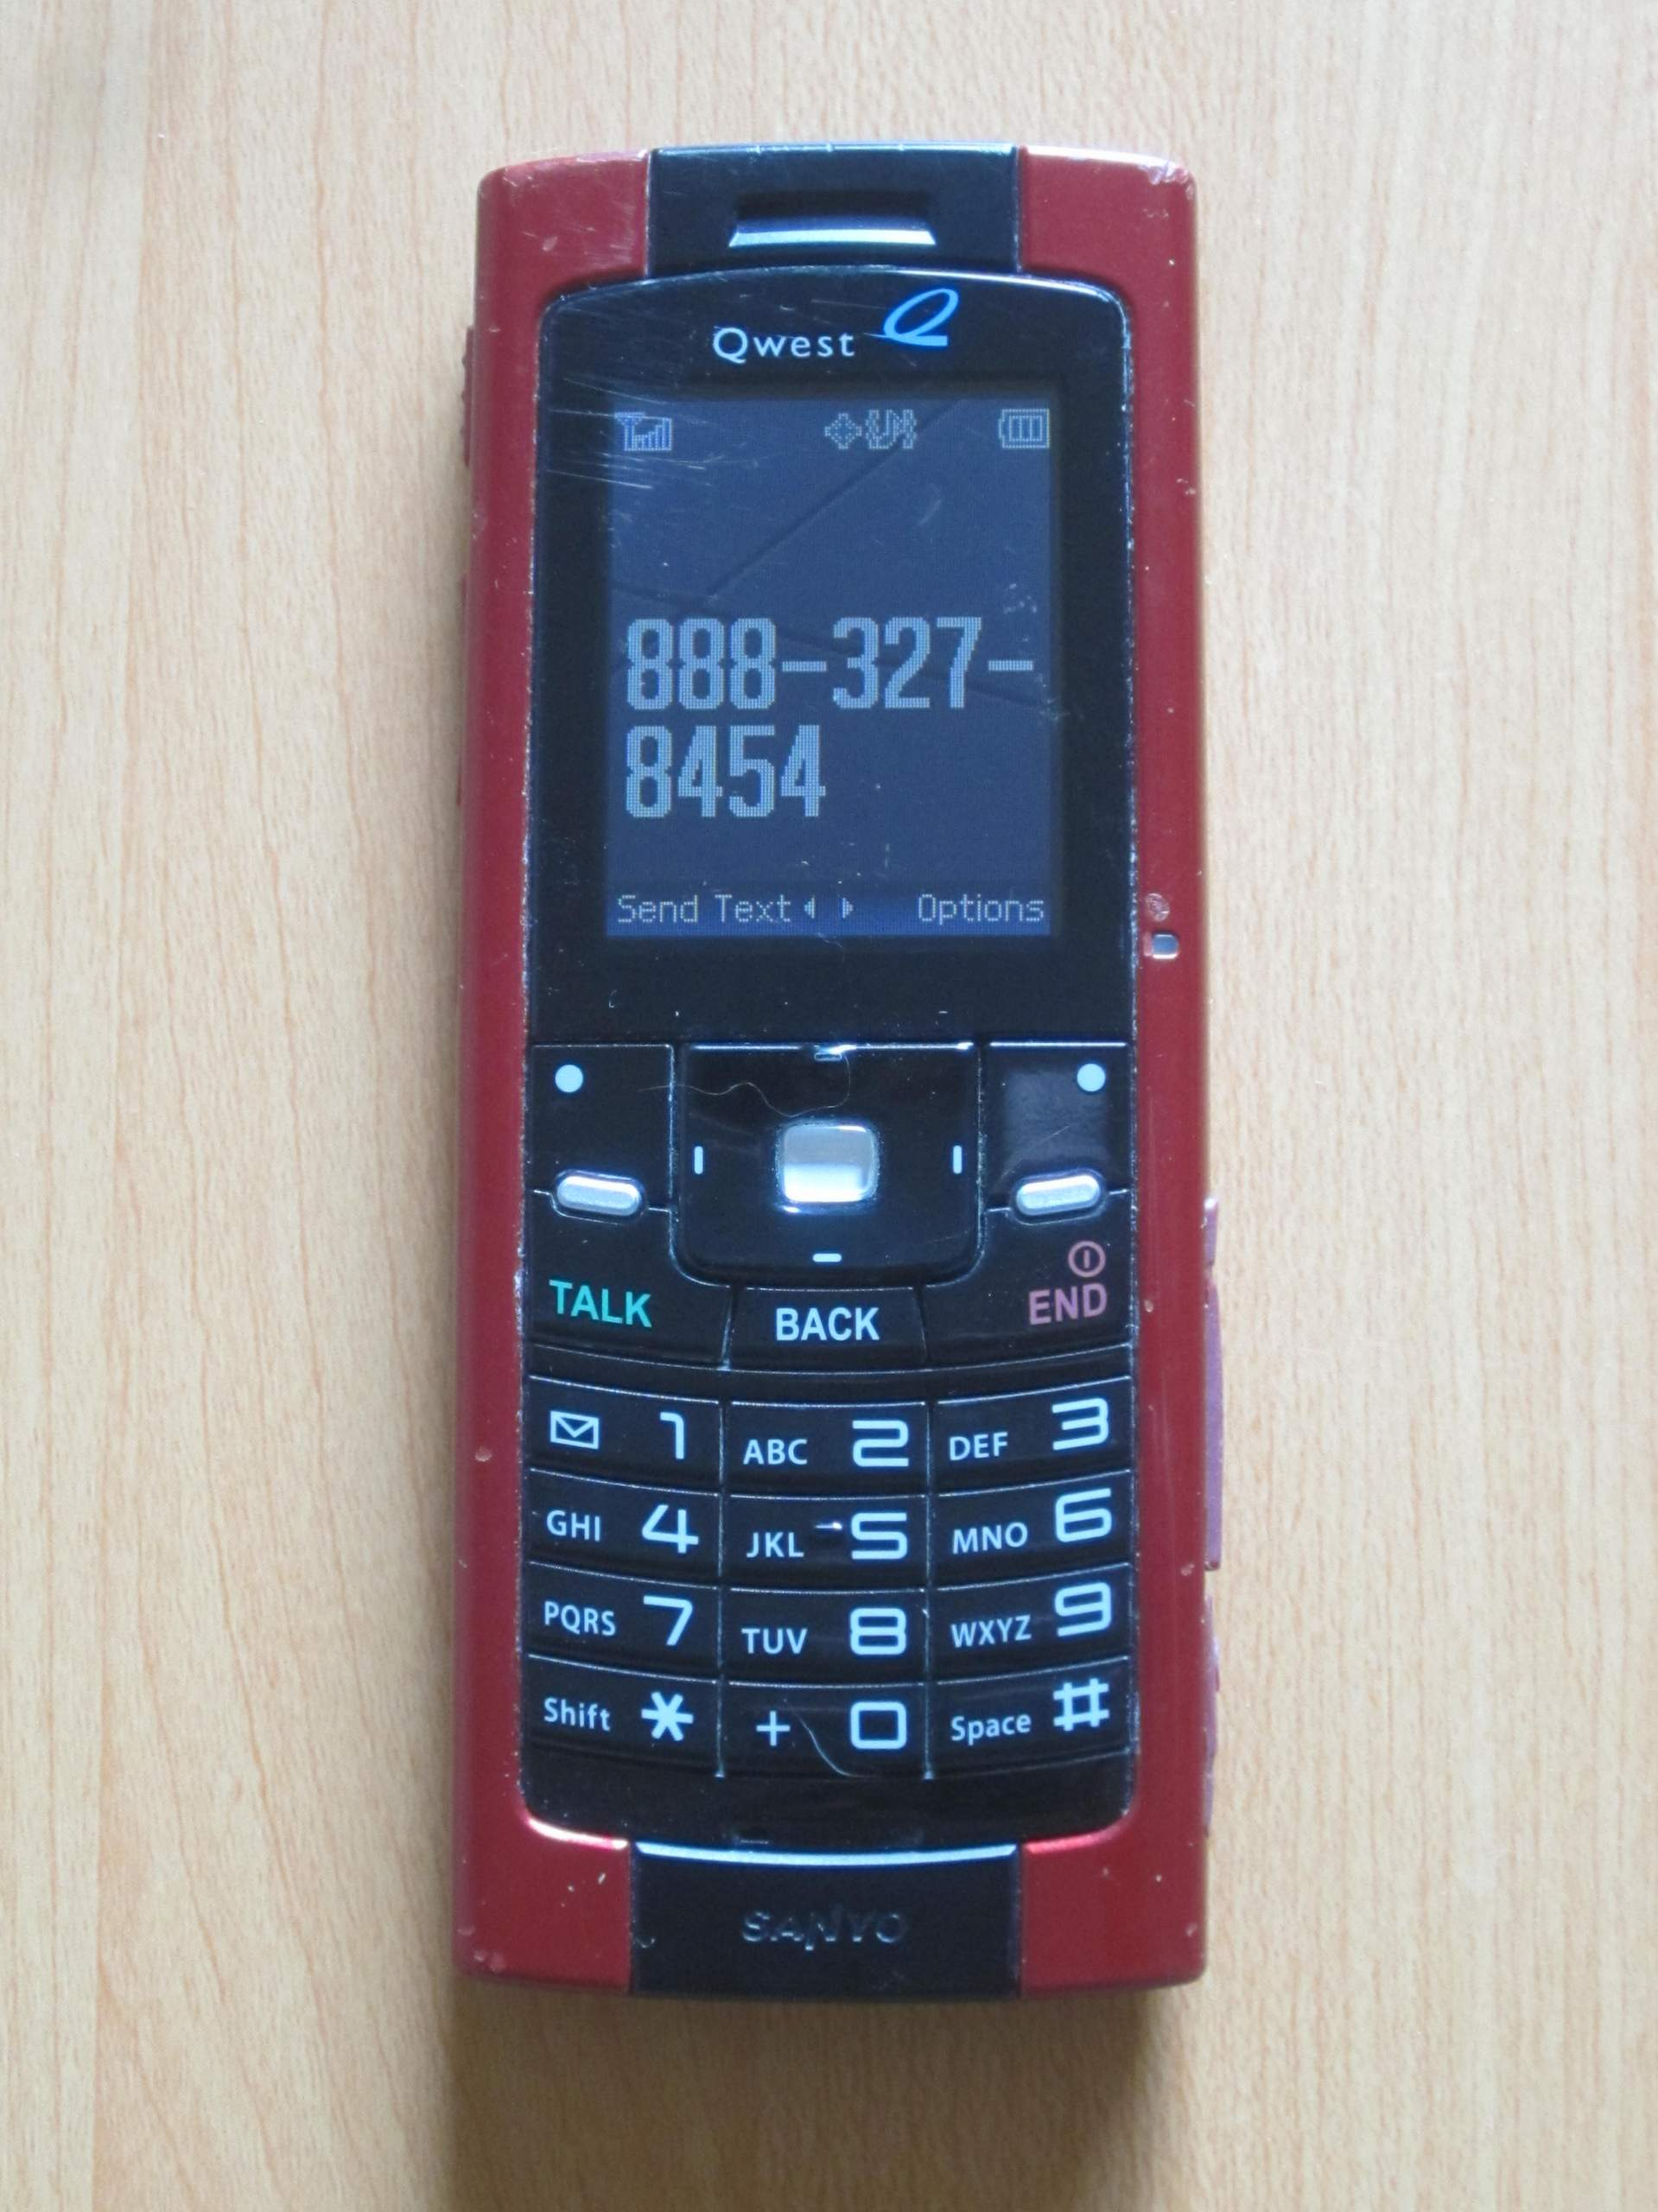 red Sanyo Qwest bar phone, 888-327-8454